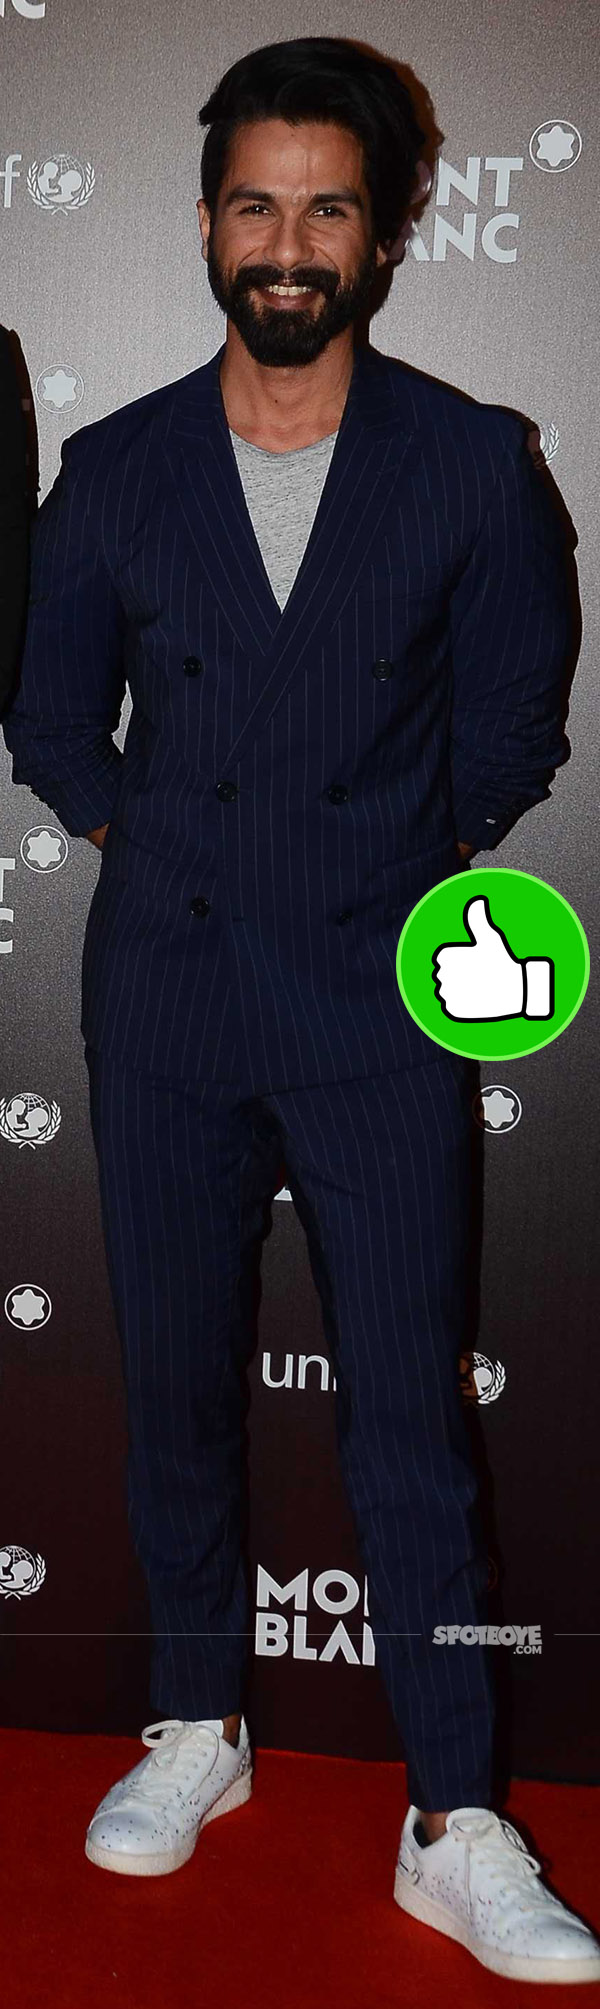 shahid kapoor looks dashing in a blue stripped suit at the mont blach bash